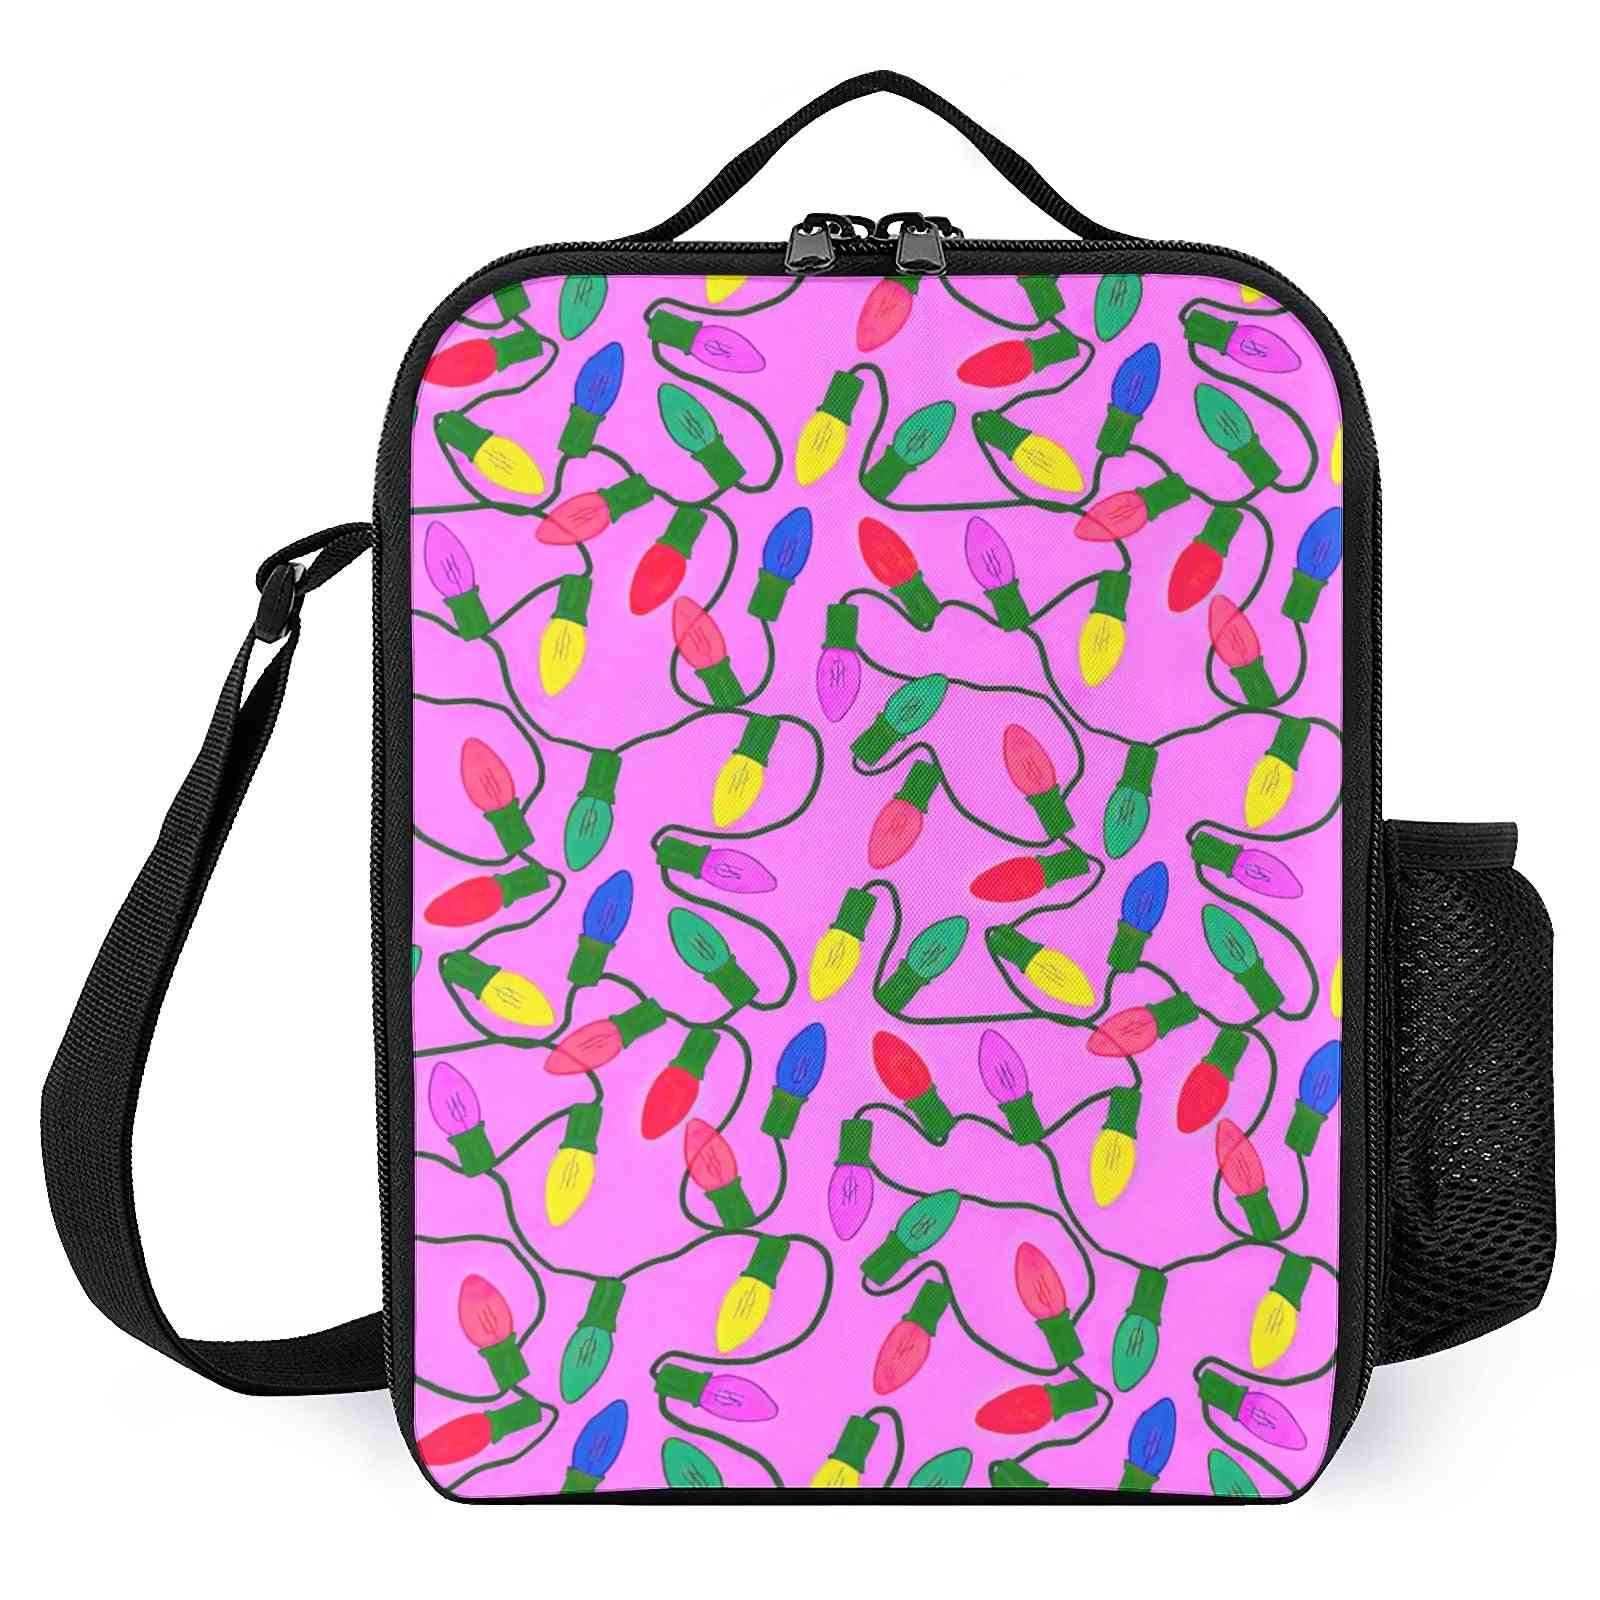 Stylish Floral Printed- Insulated Lunch Tote Bags For School